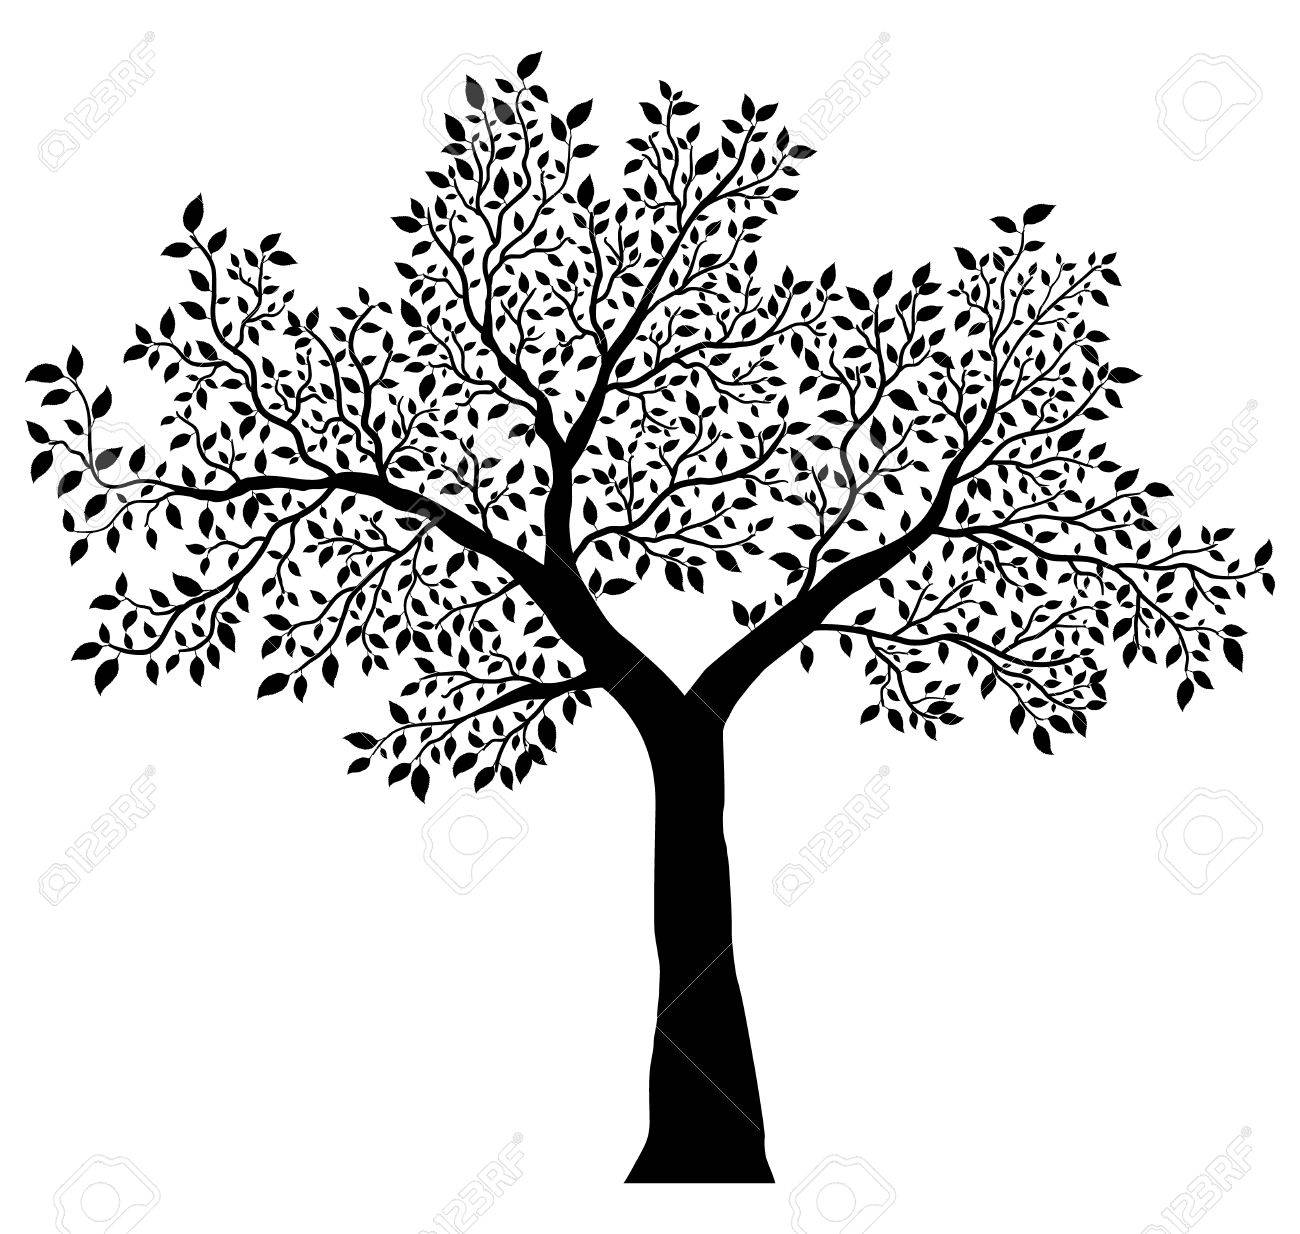 tree with leaves vector - 47039543